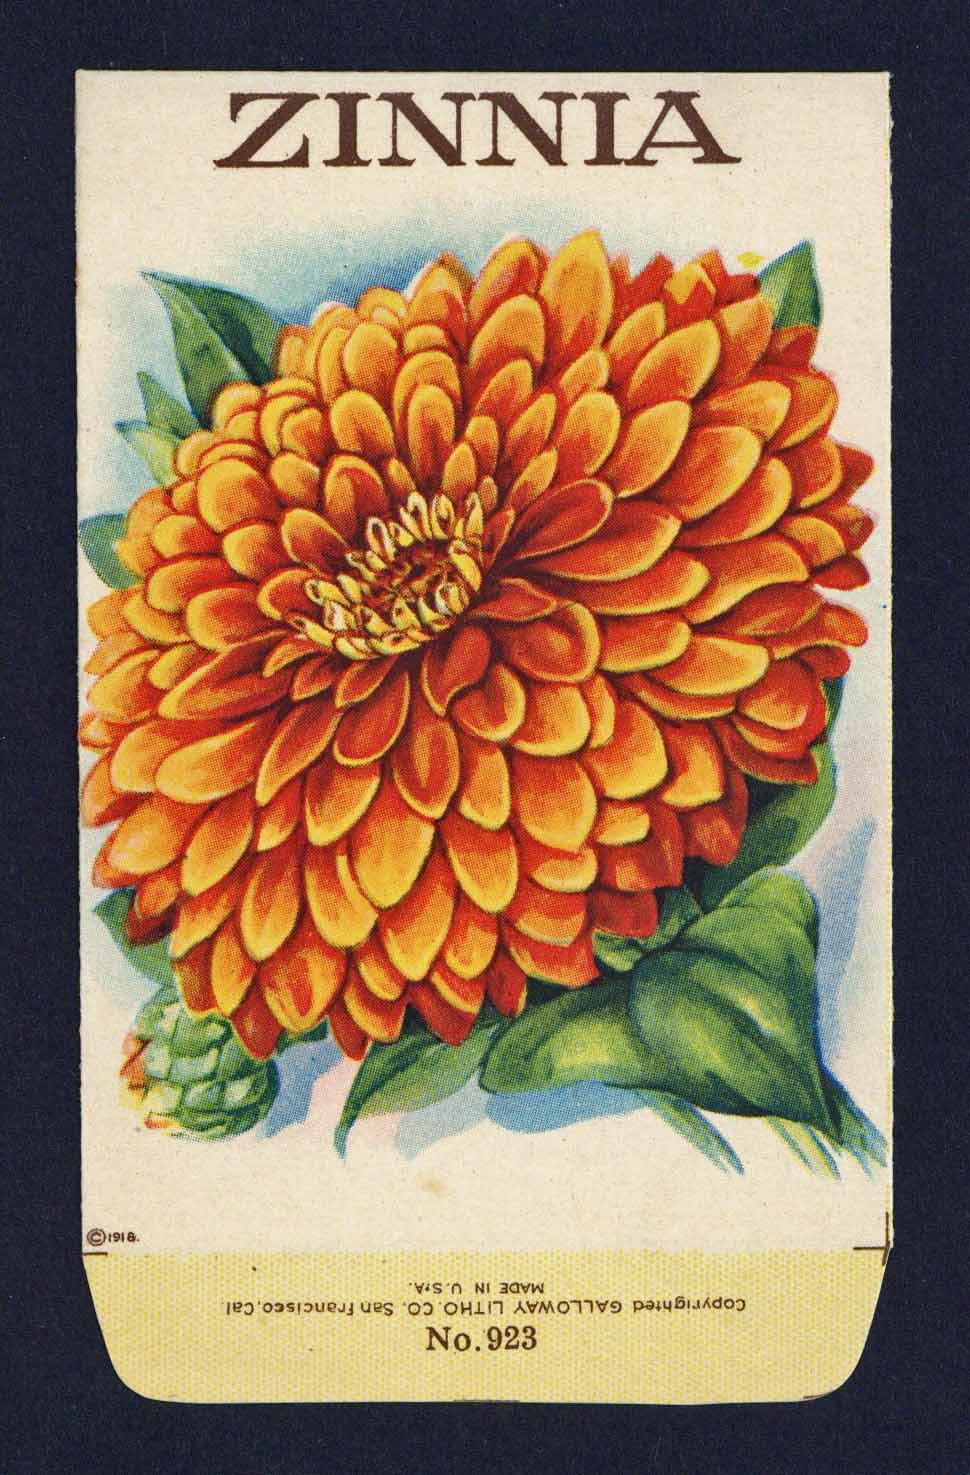 Zinnia Antique Stock Seed Packet, orange